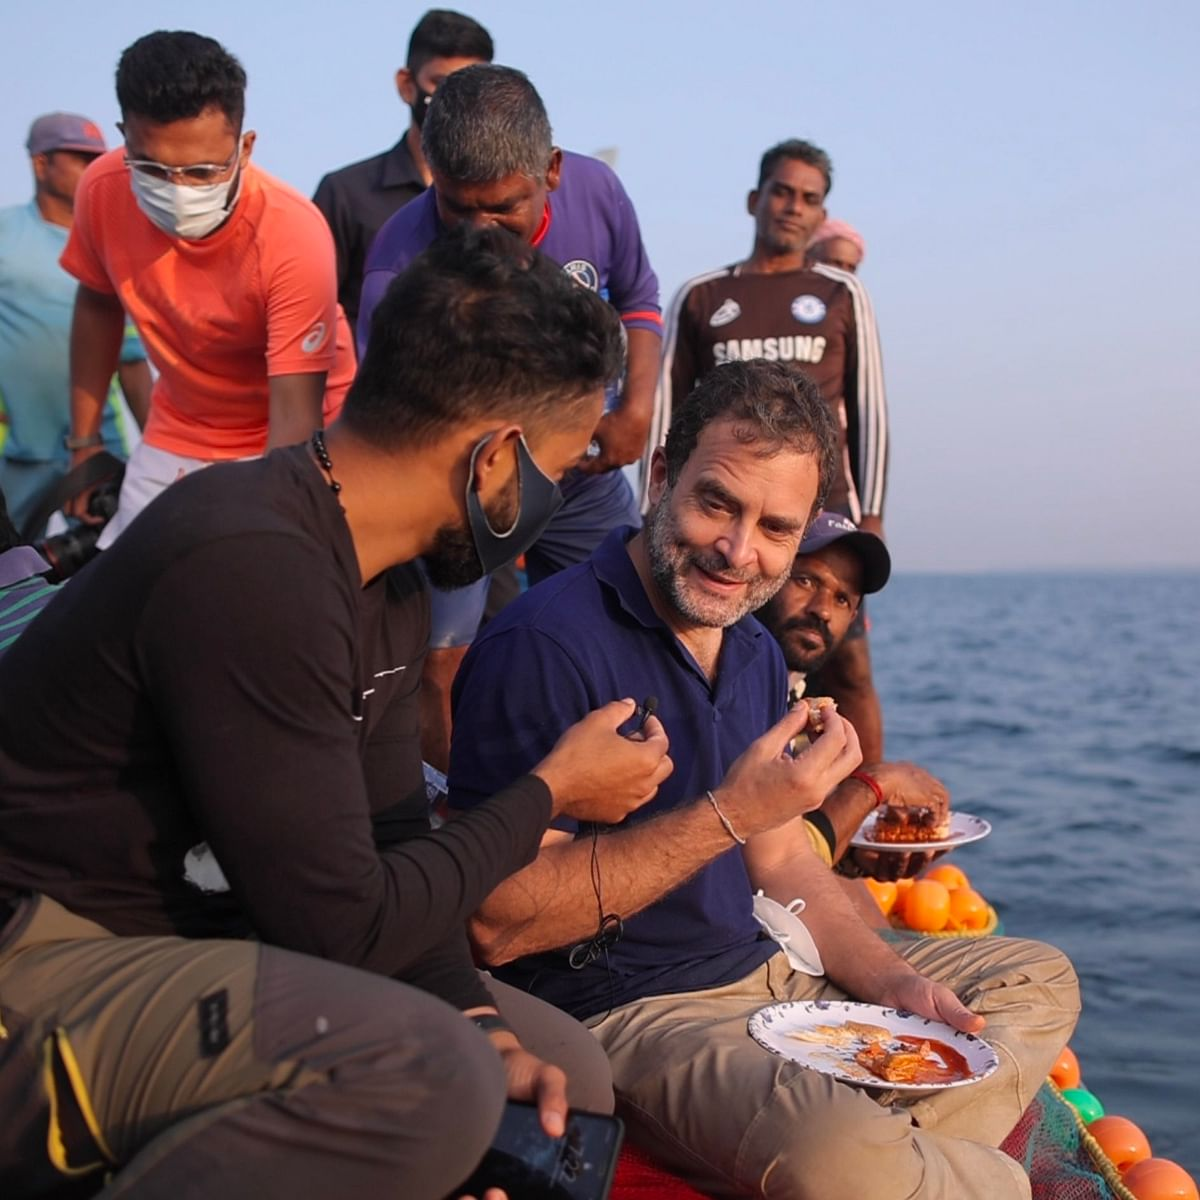 Rahul gandhi having food with the boat's crew